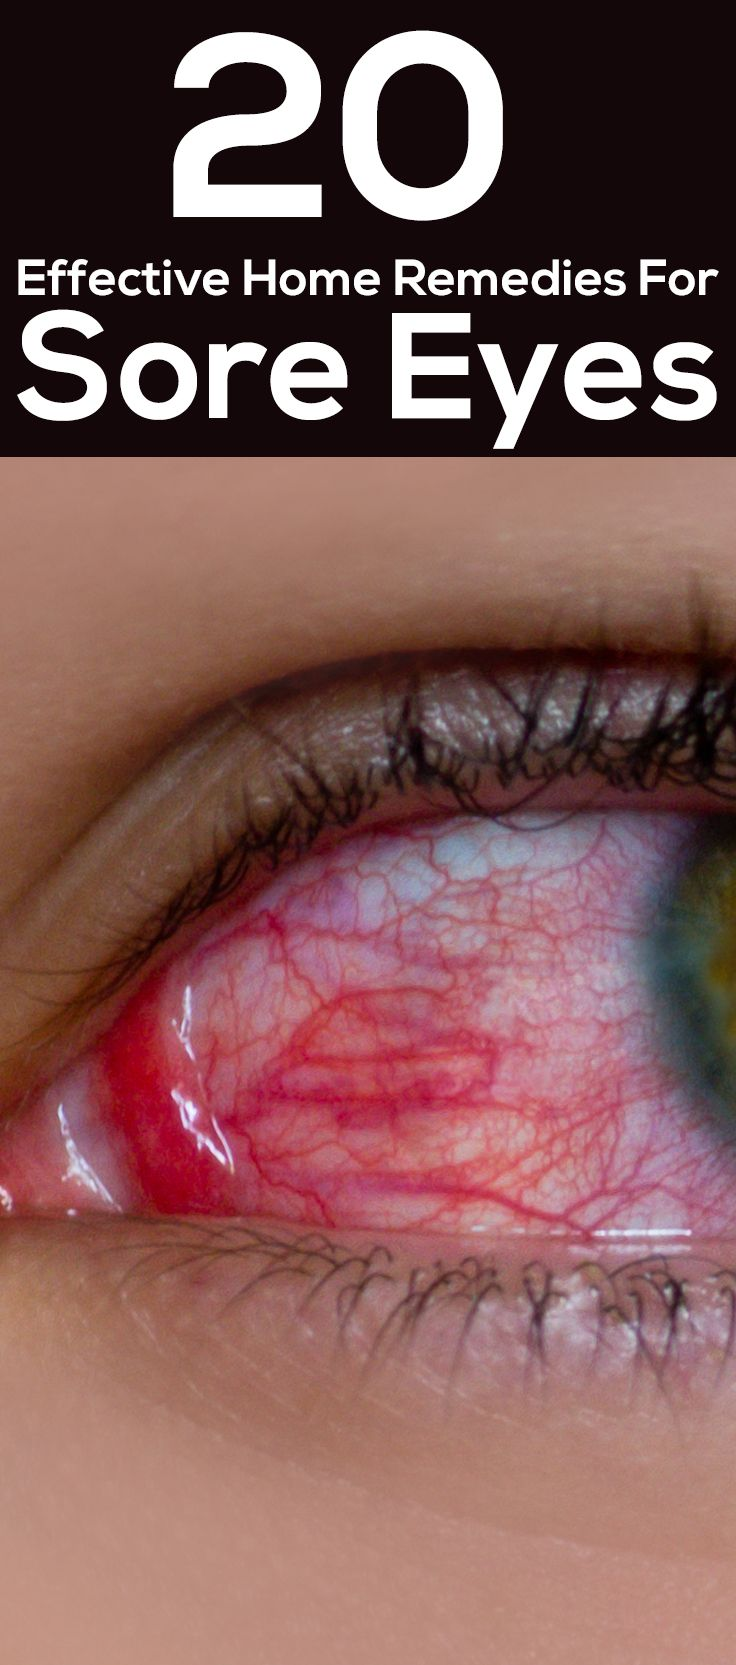 20 Effective Home Remedies For Sore Eyes